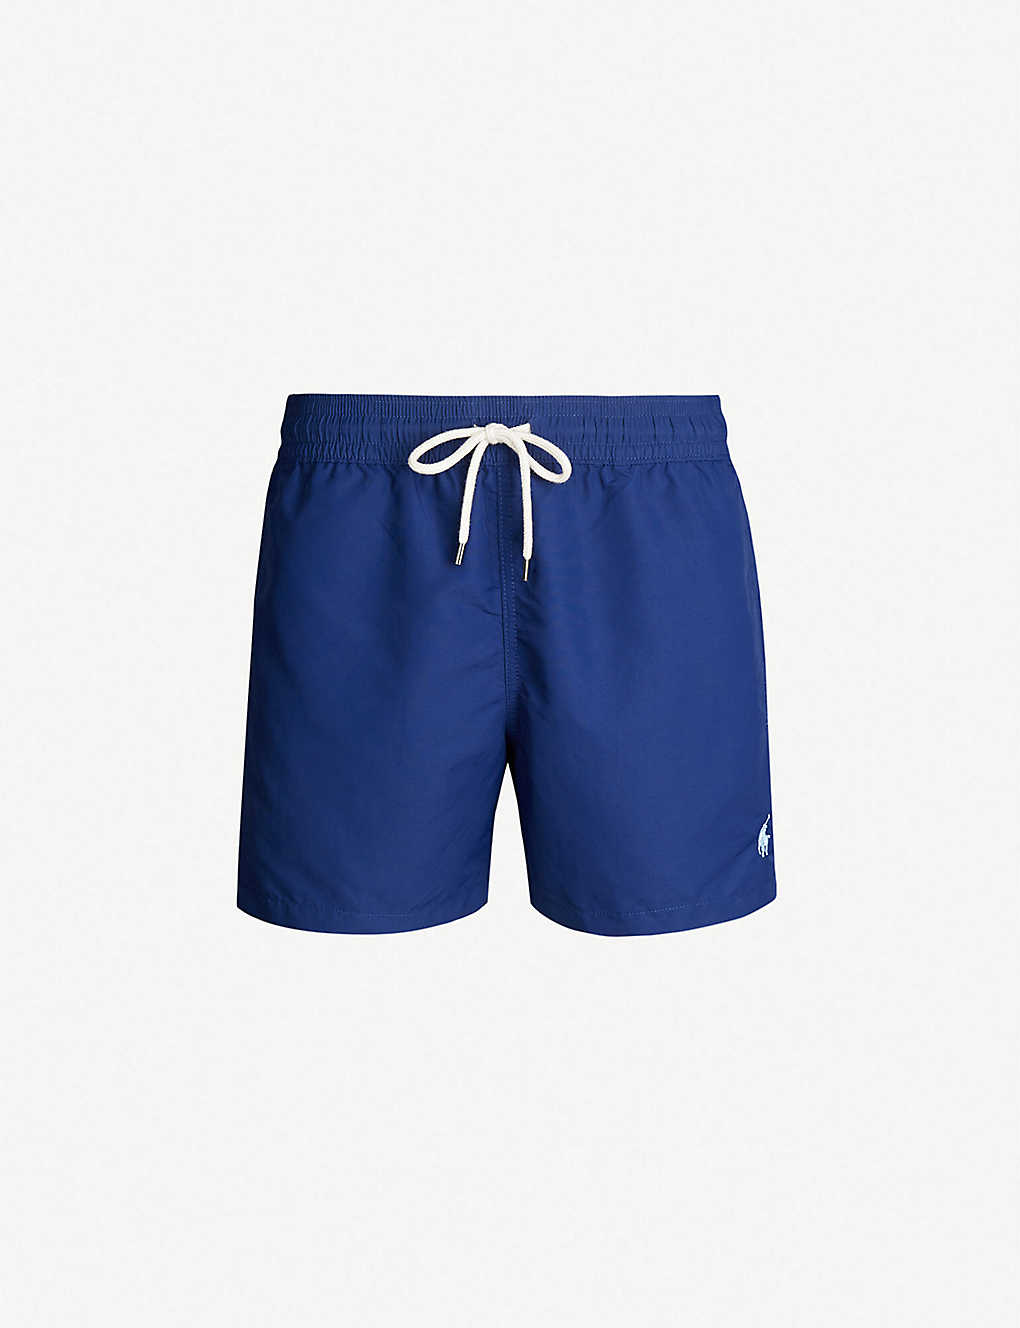 4e45411b07 POLO RALPH LAUREN - Traveller slim-fit swim shorts | Selfridges.com